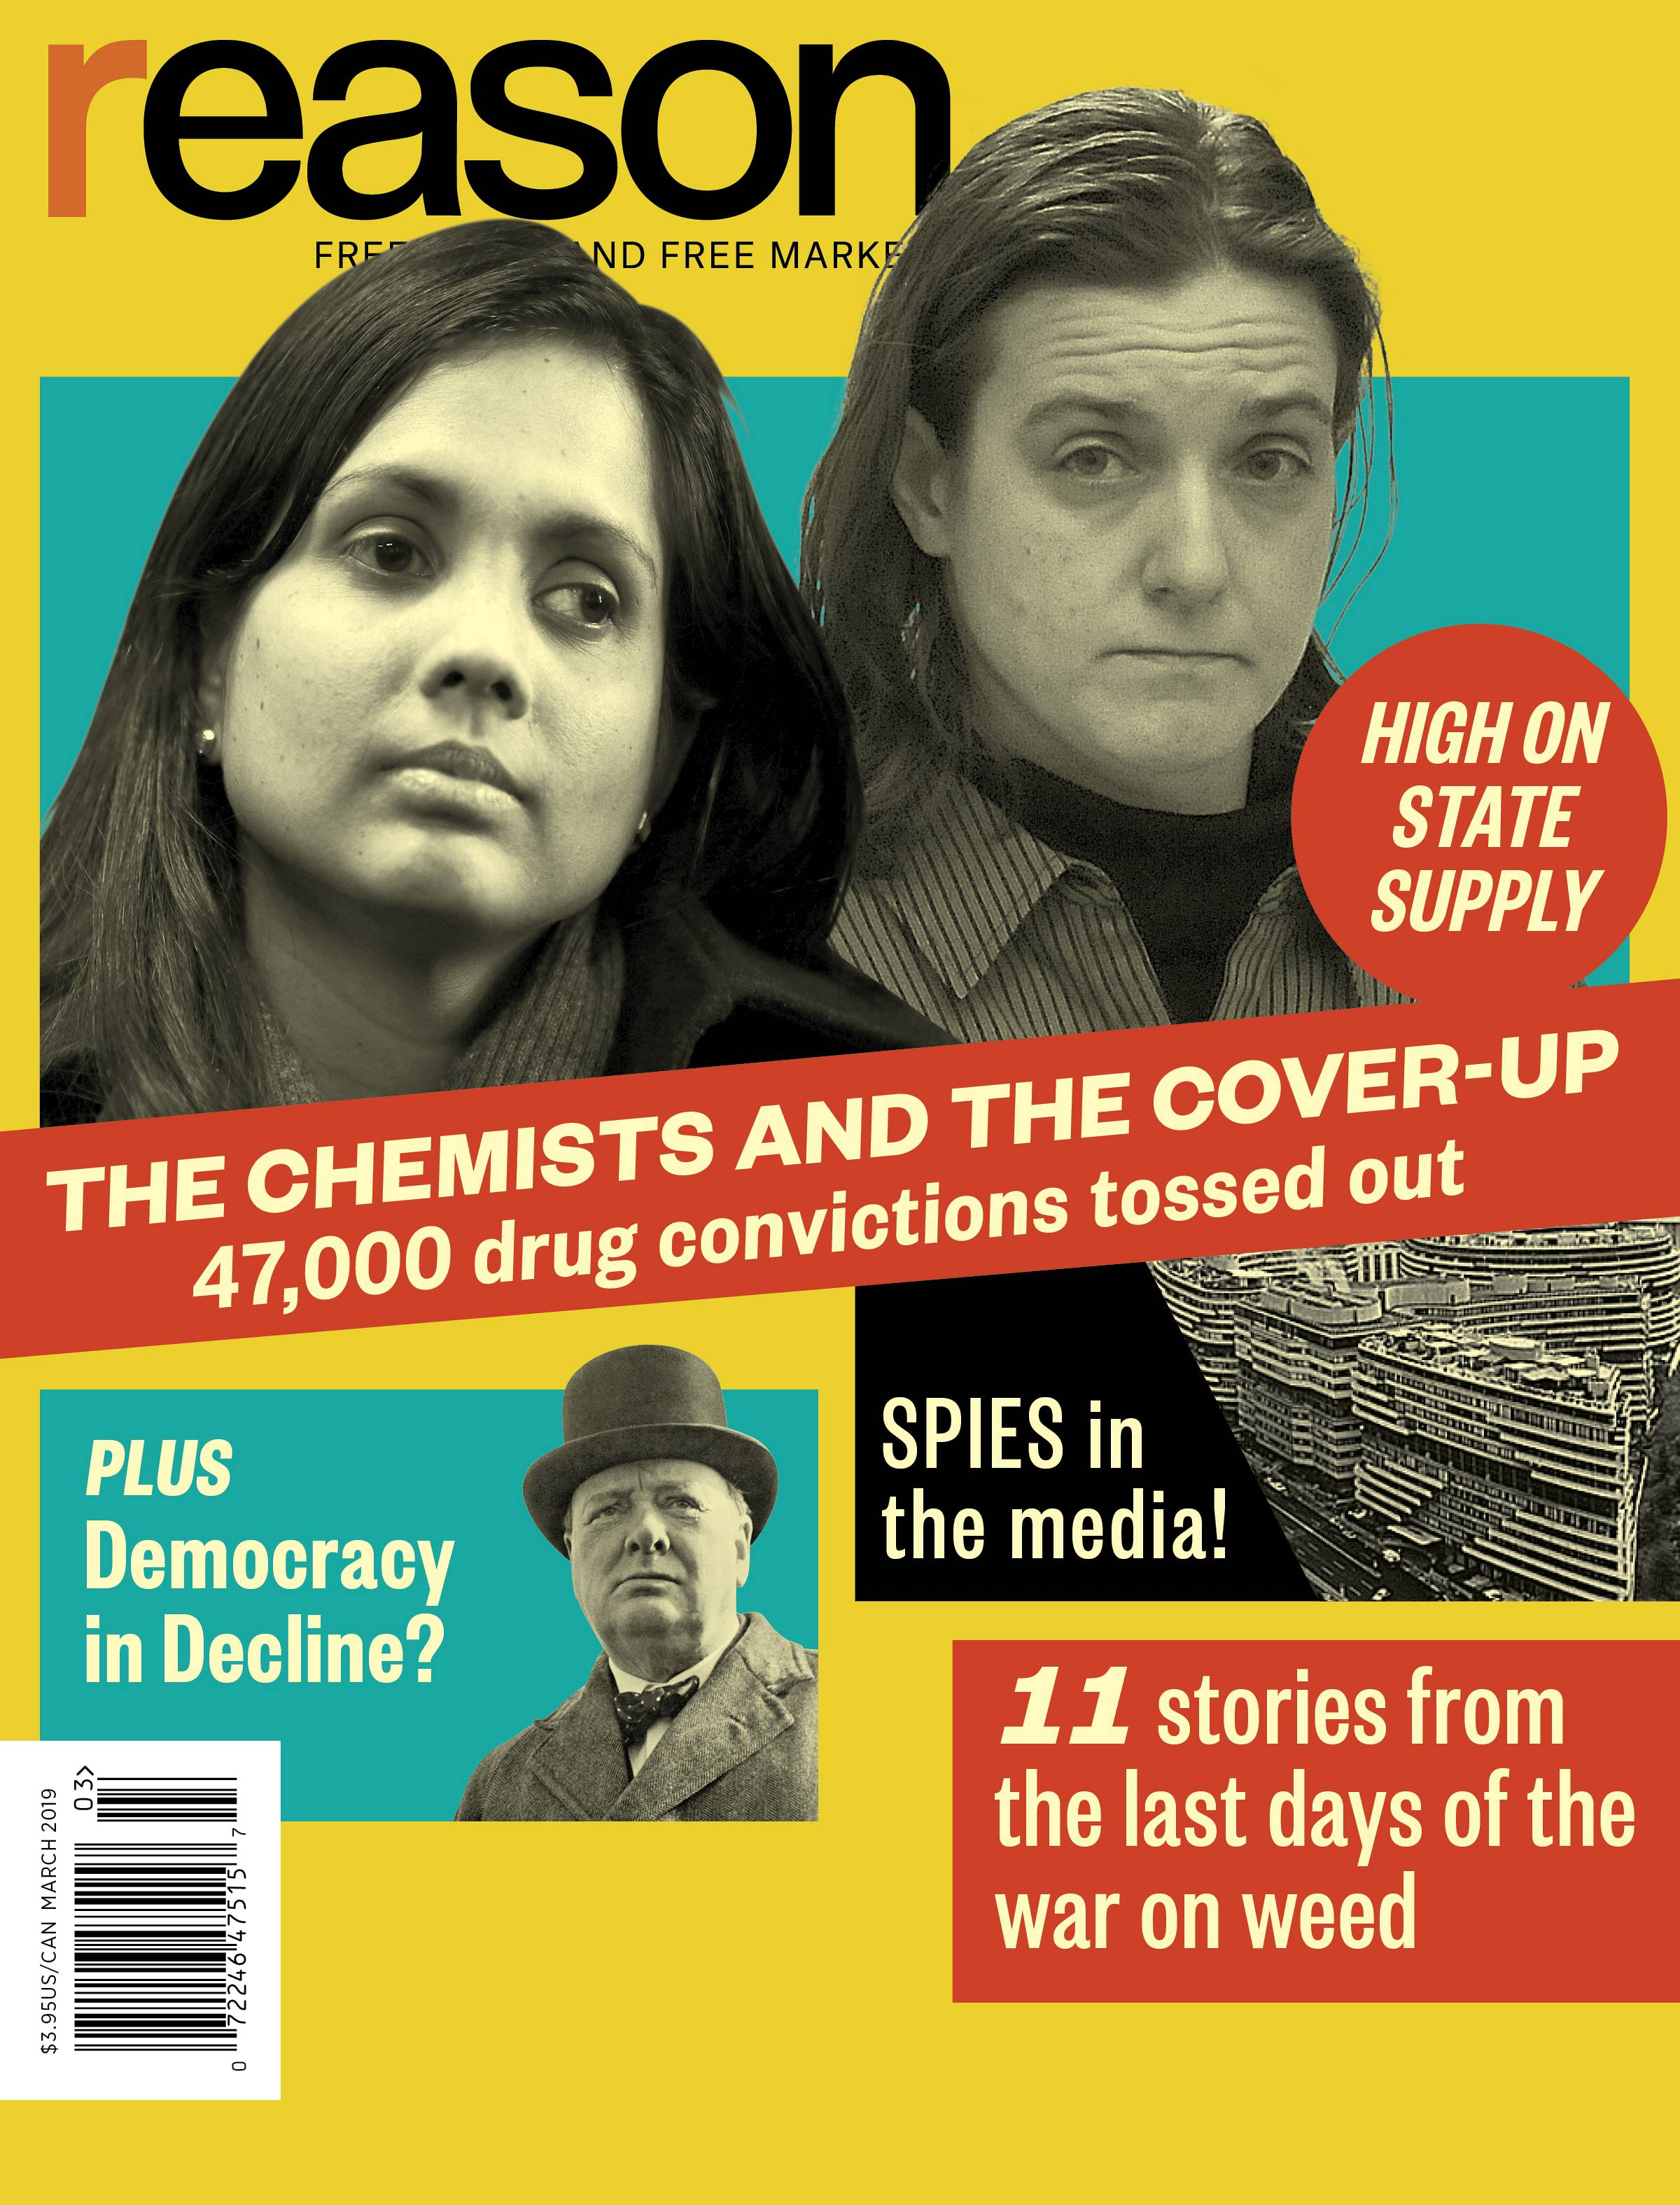 Reason Magazine, March 2019 cover image